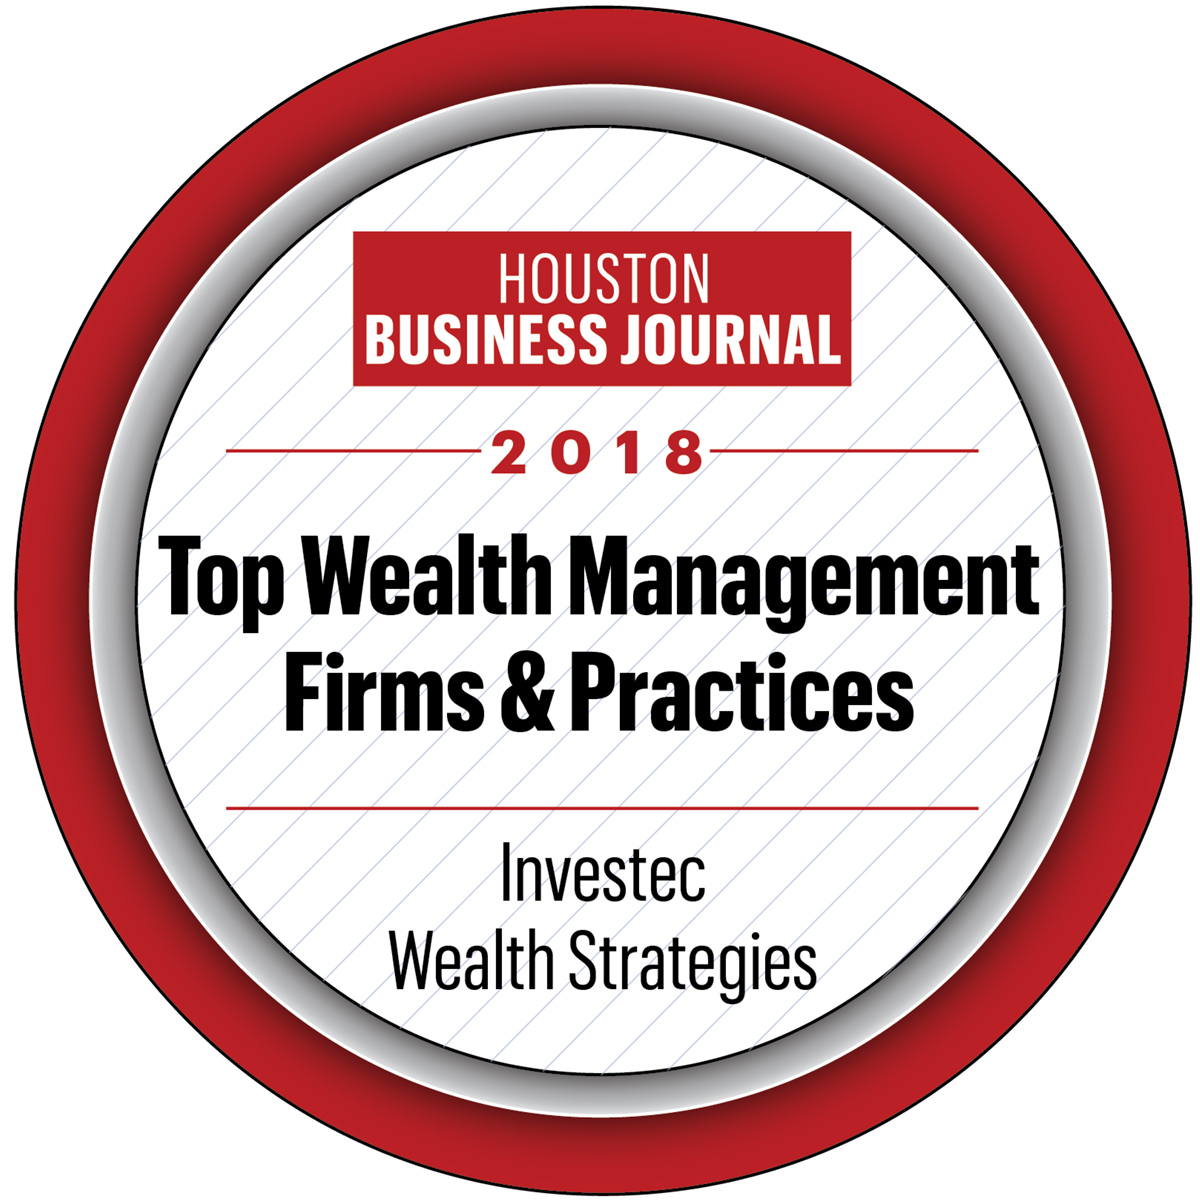 Investec - Houston Business Journal Top Wealth Management Firms, 2018